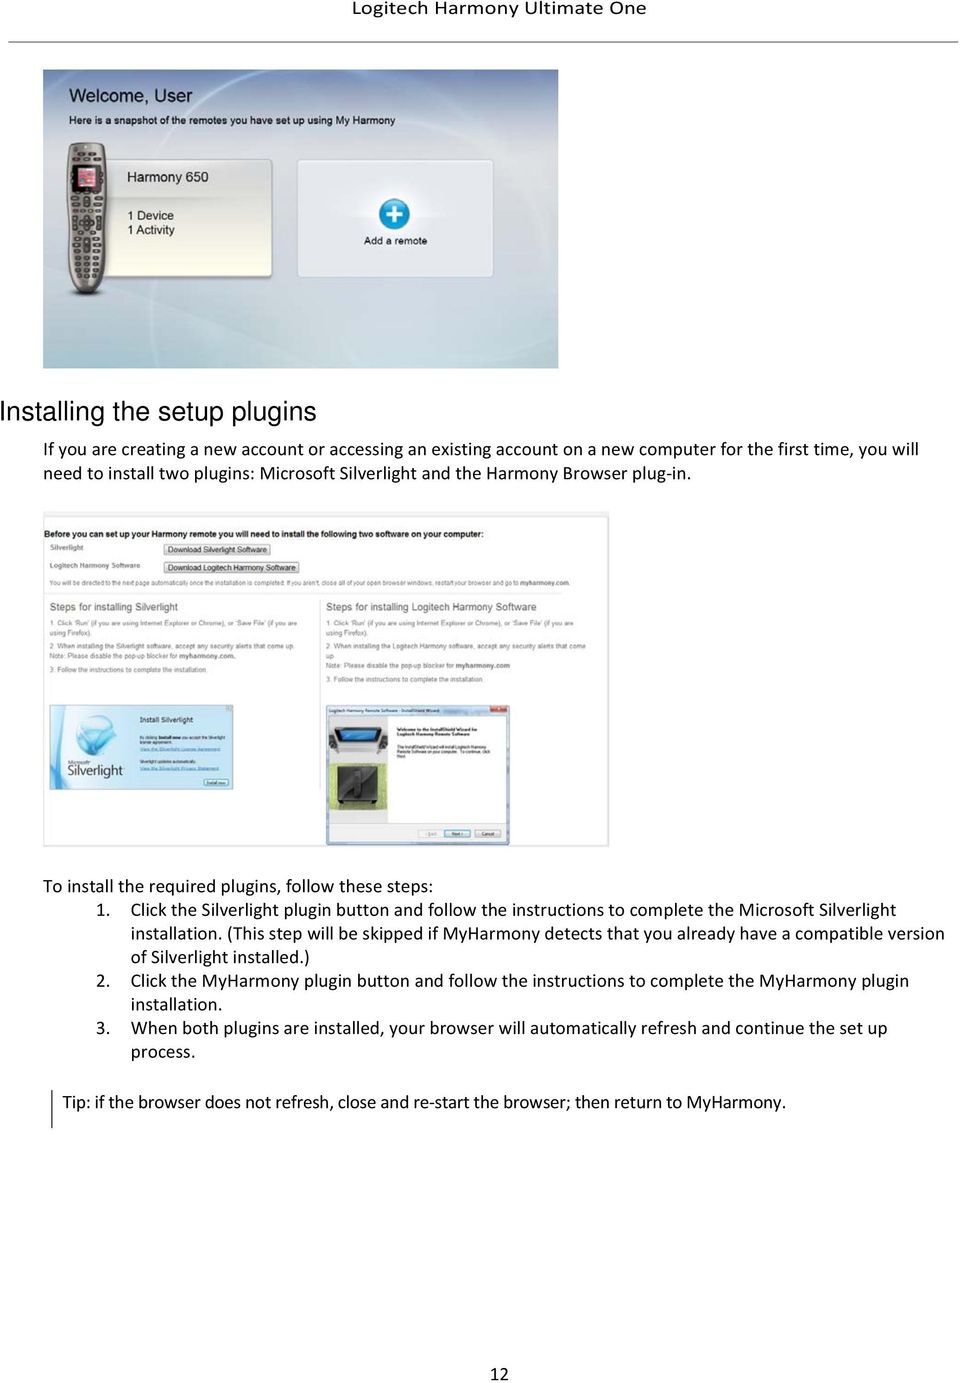 Click the Silverlight plugin button and follow the instructions to complete the Microsoft Silverlight installation.